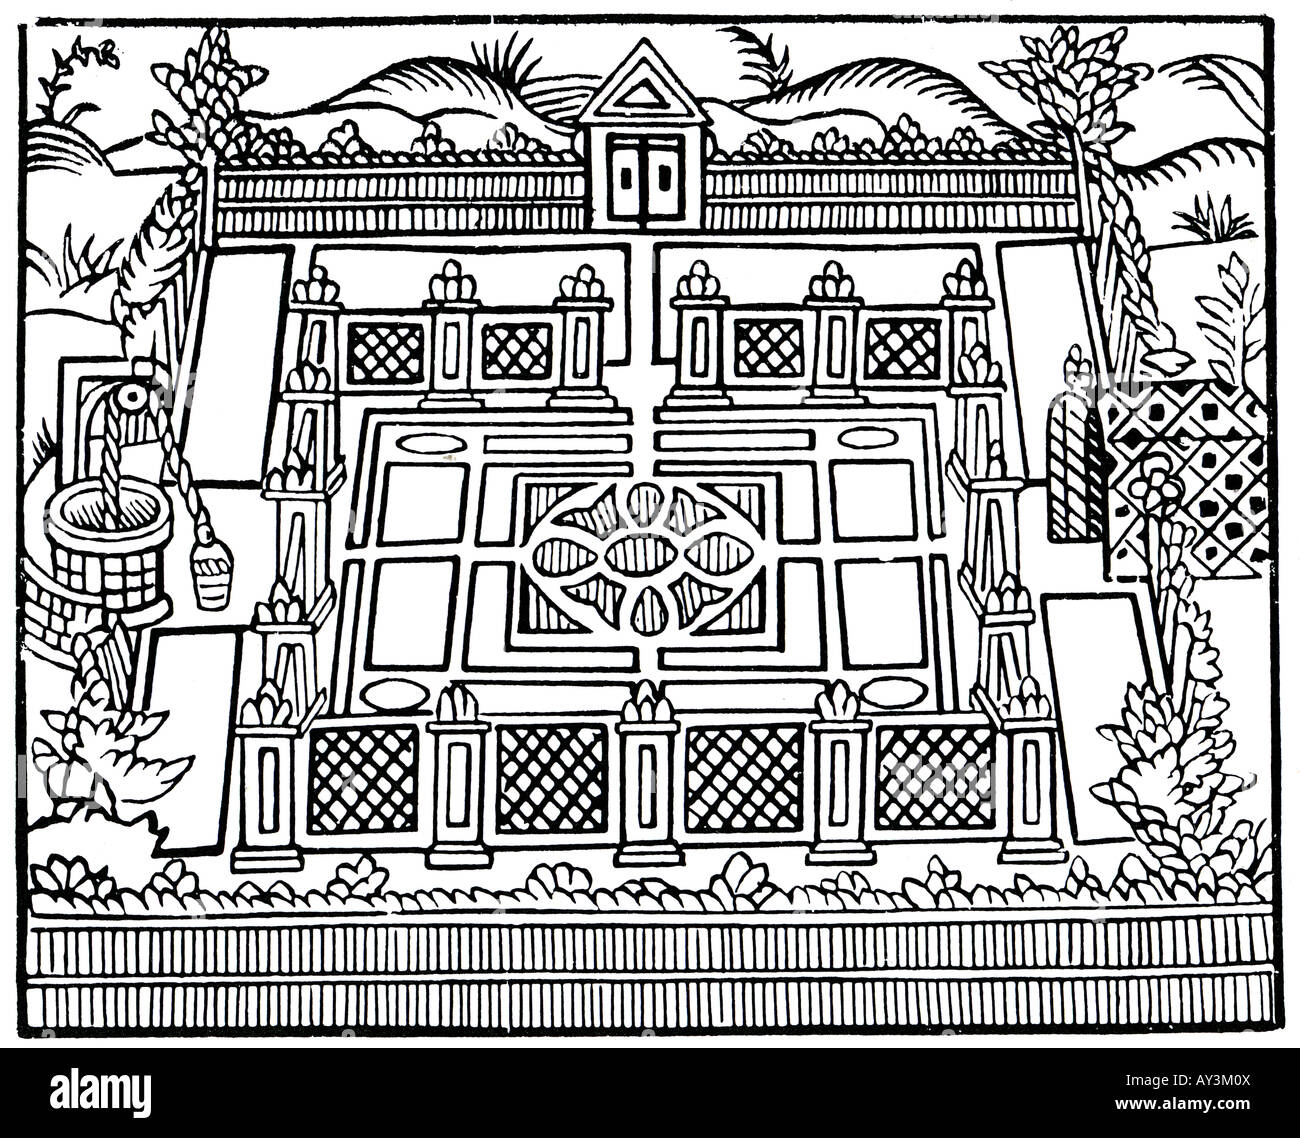 THE GARDENER'S LABYRINTH by Thomas Hill printed in 1571 showing beds  enclosed by an inner fence and outer hedged pallisade